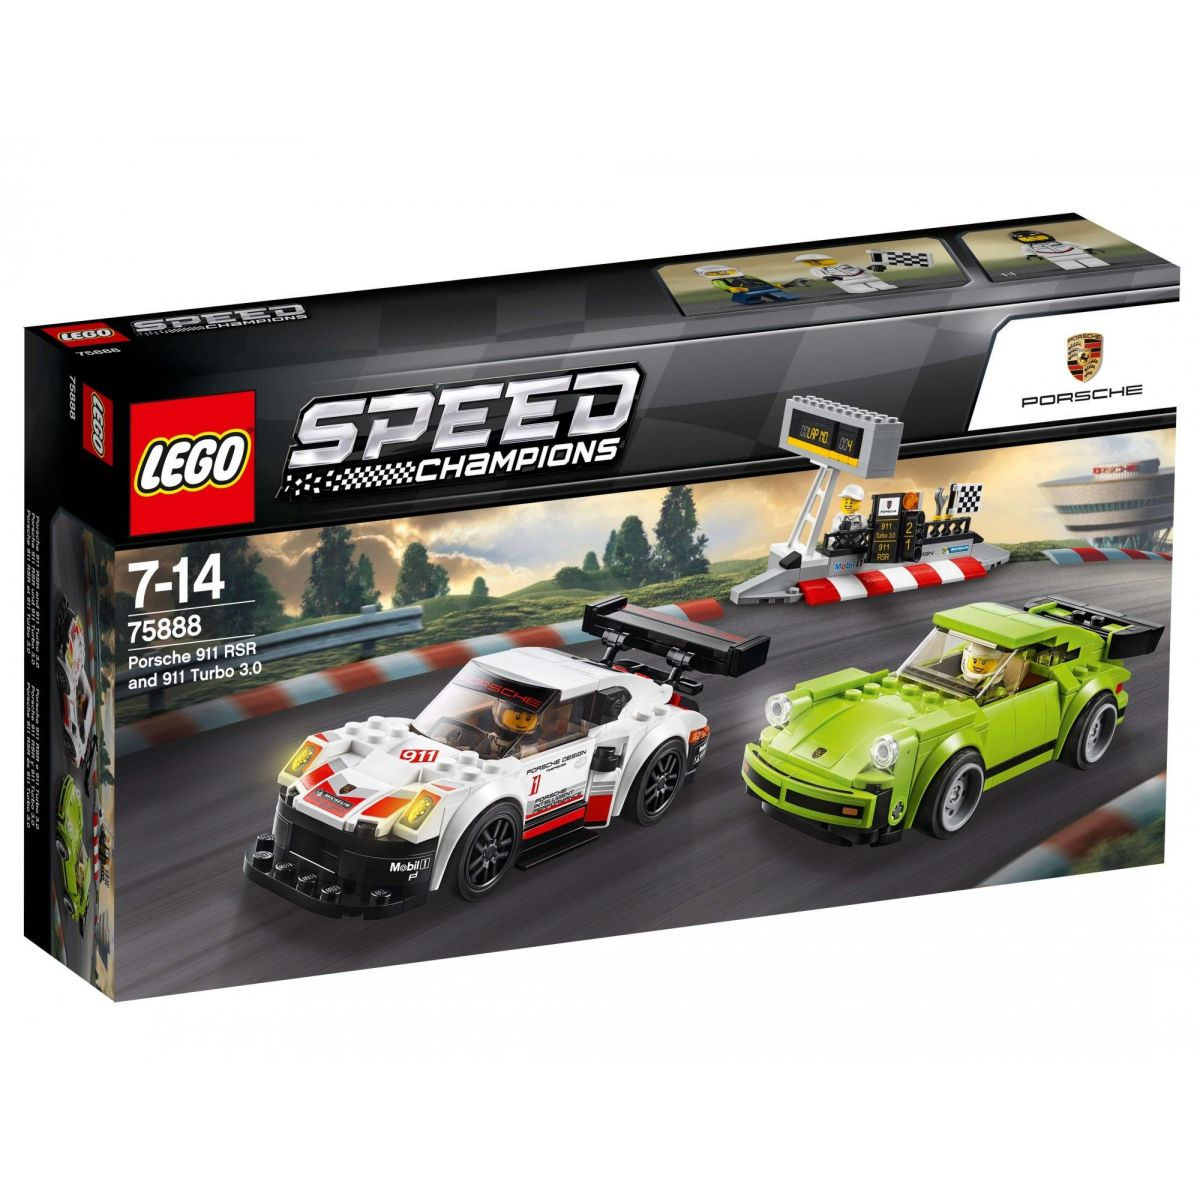 LEGO Speed Champions 75888 Porsche 911 RSR a 911 Turbo